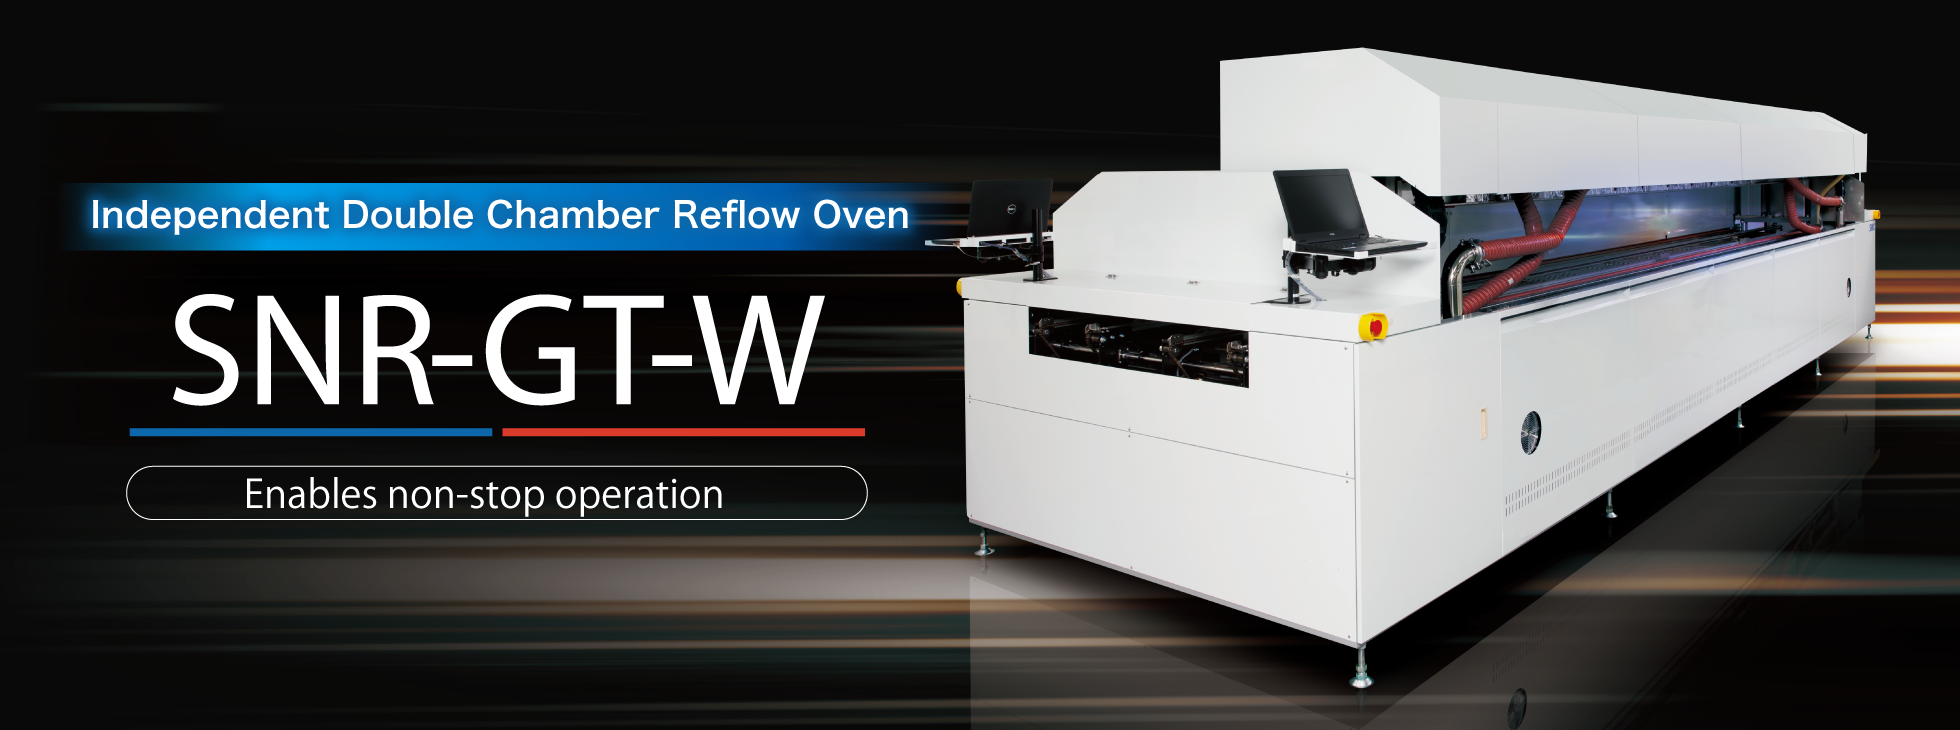 Independent Double Chamber Reflow Oven SNR-GT-W Non-stop Operation with Independent Double Chamber